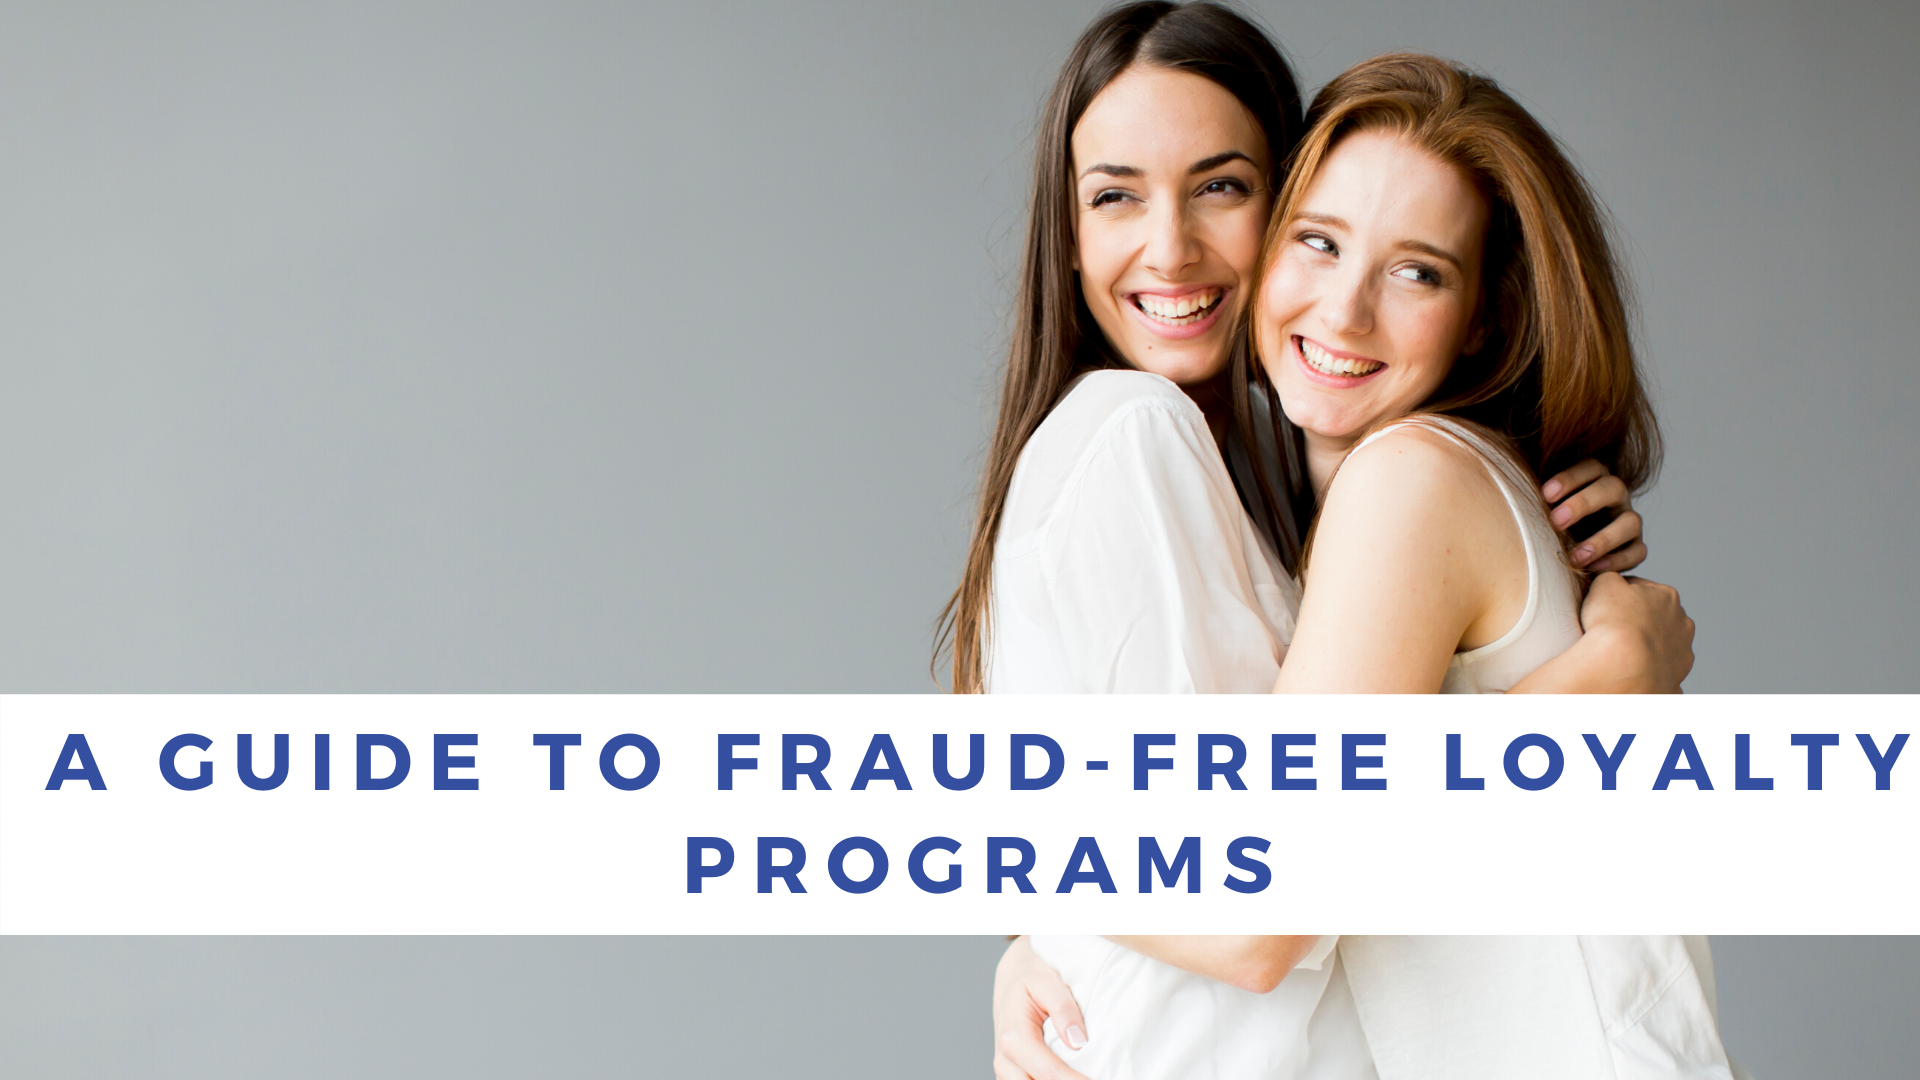 How to stop loyalty program fraud in 8 simple steps